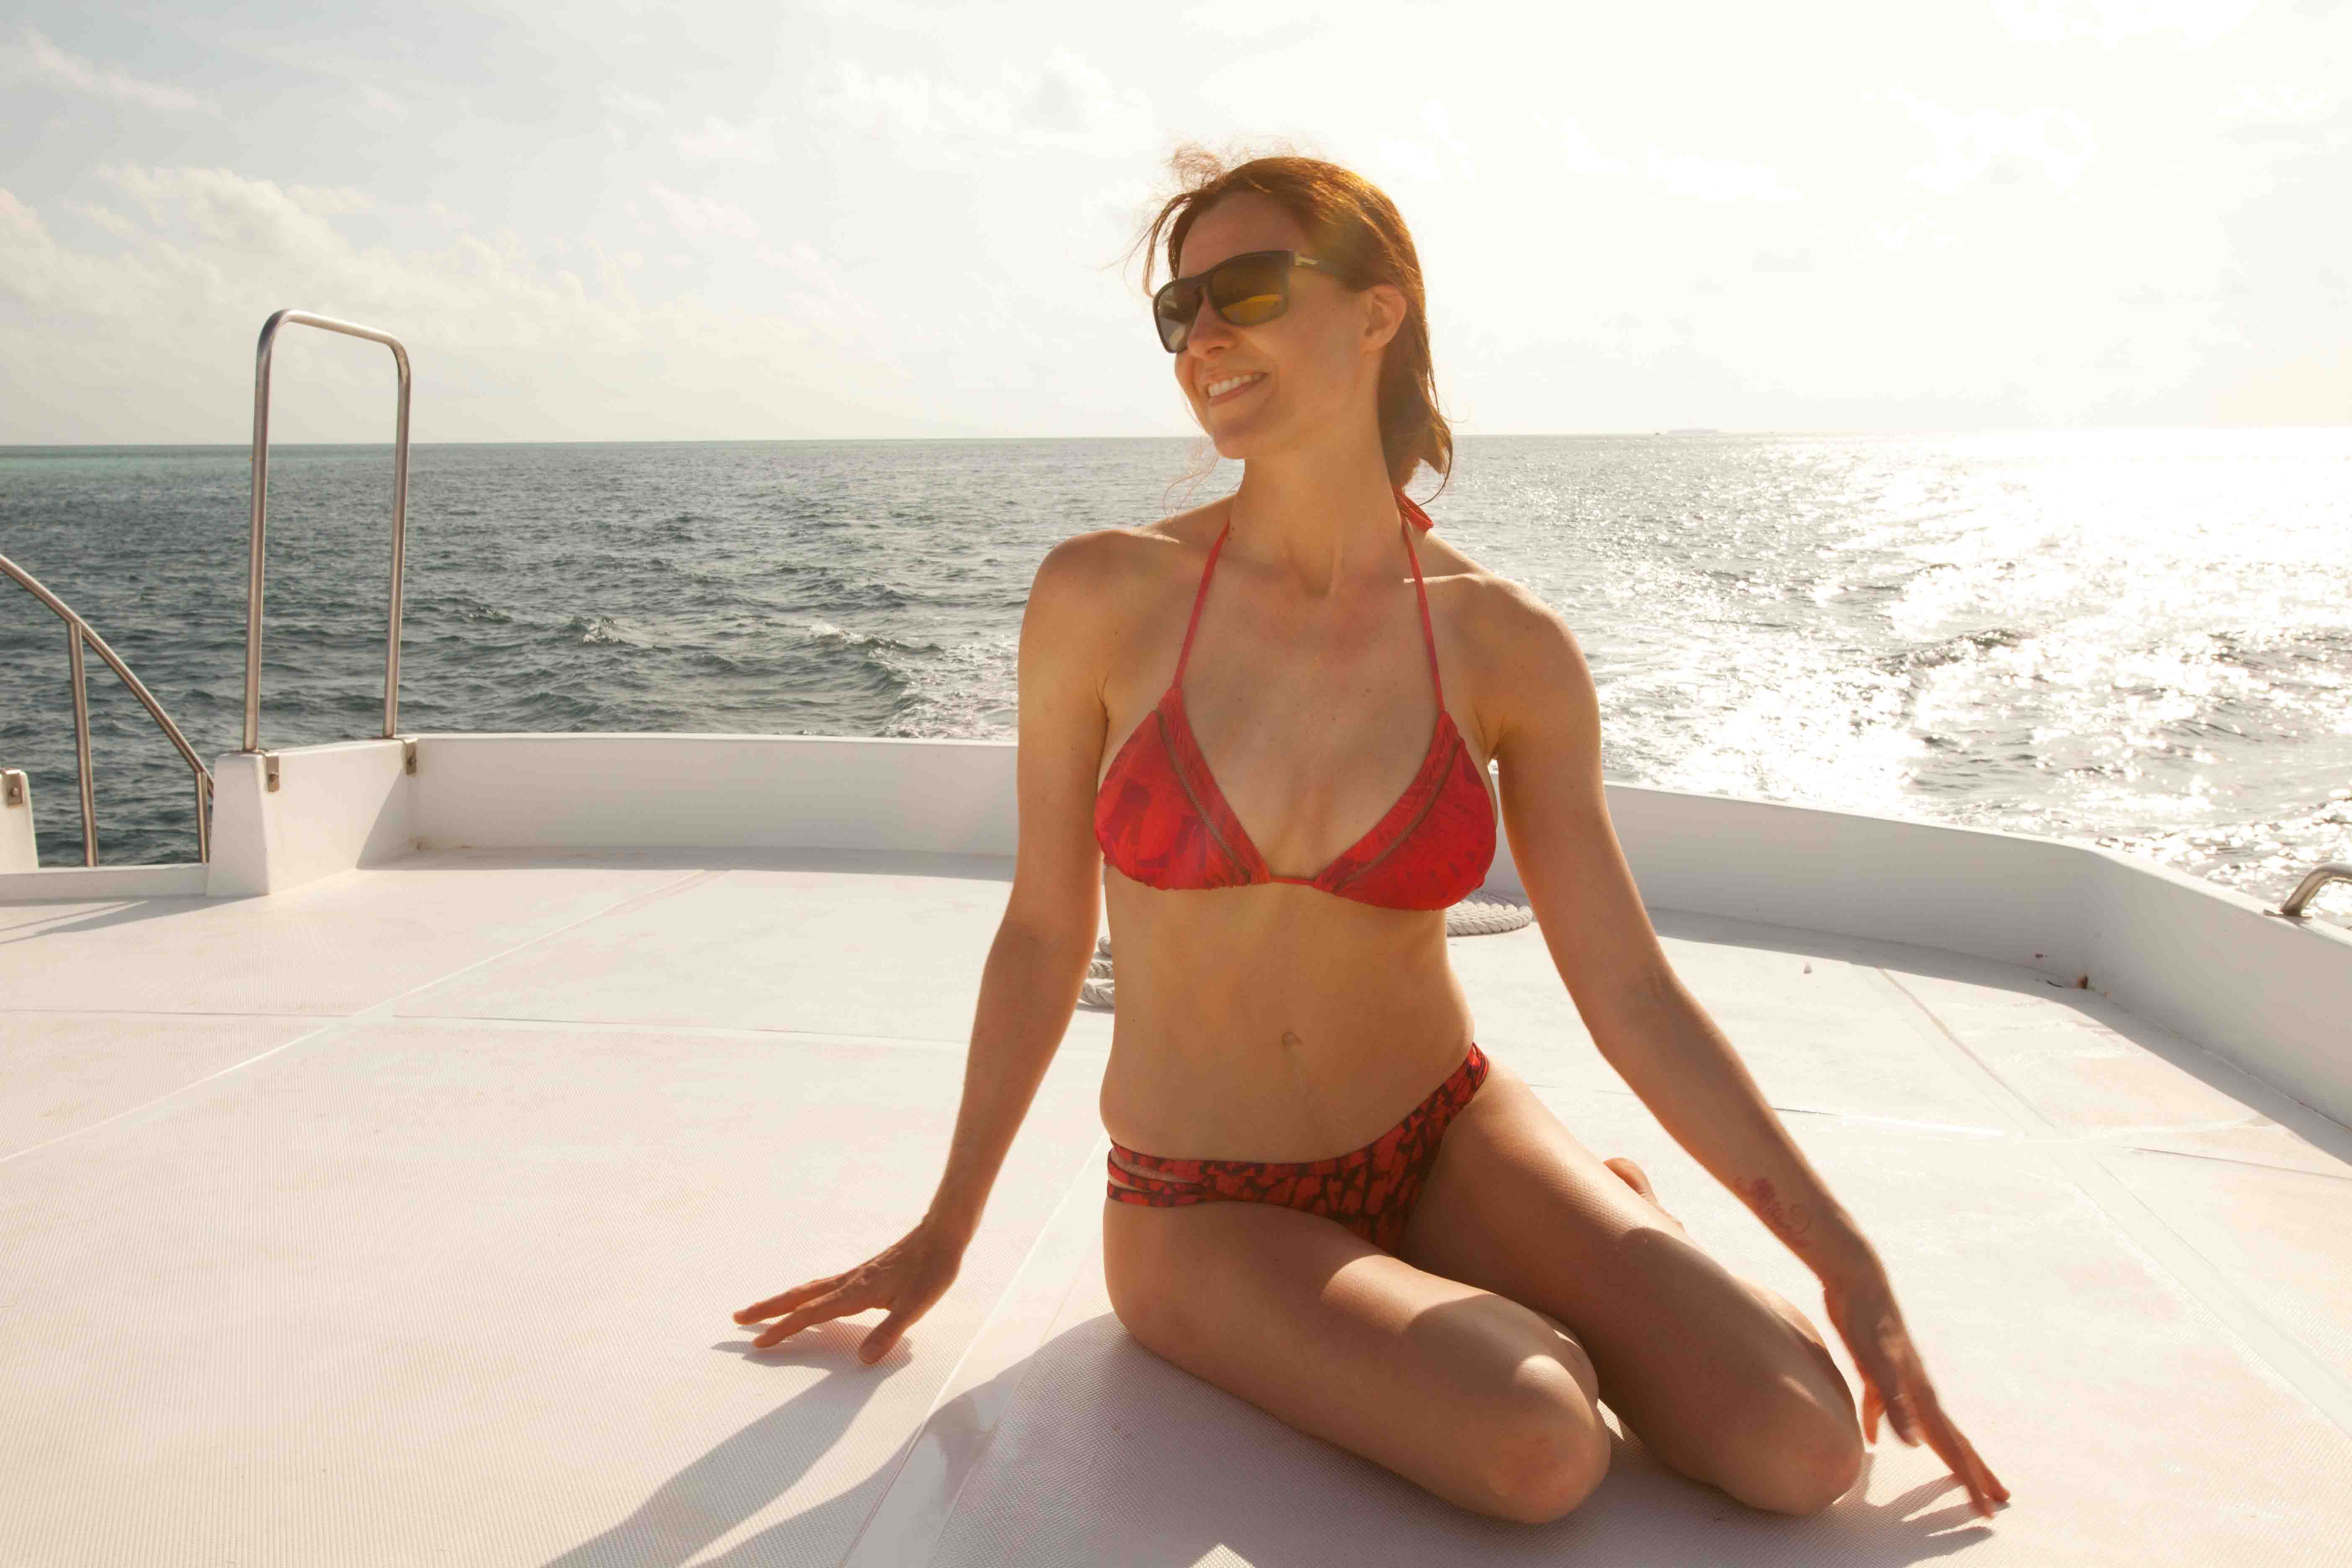 Sean's wife Jeannie loving life in the Maldives